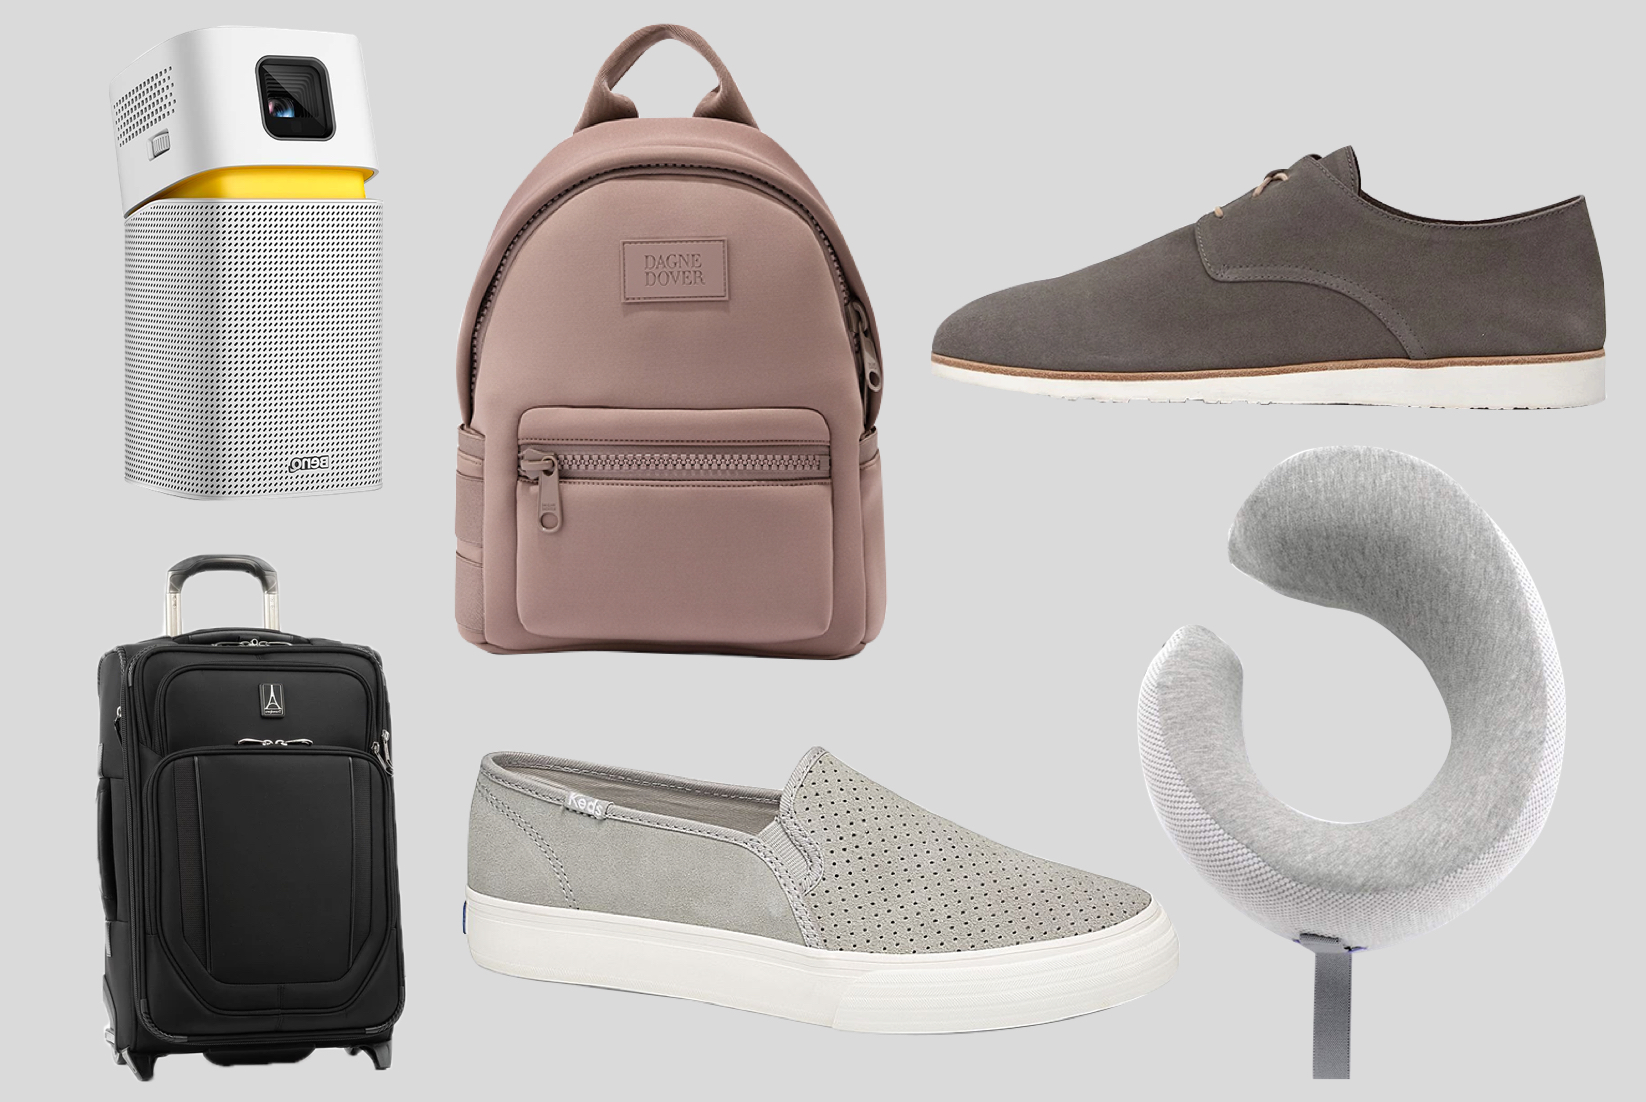 The 6 Best Travel Accessories of 2019, According on SmarterTravel Editors